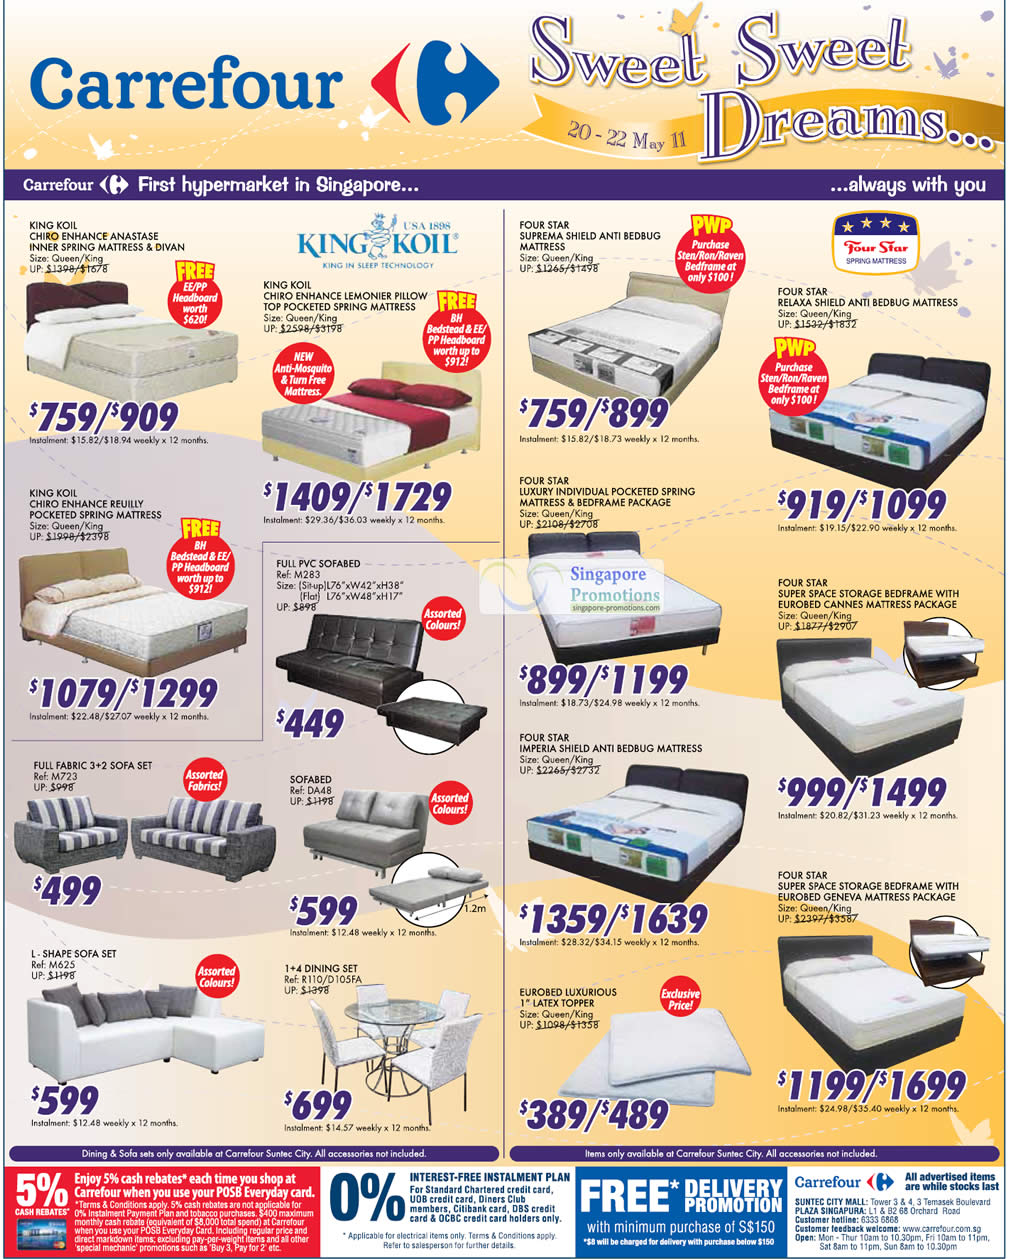 Carrefour 20 May 2011 Mattress Sofa Beds Dining Sets Voucher Carefur